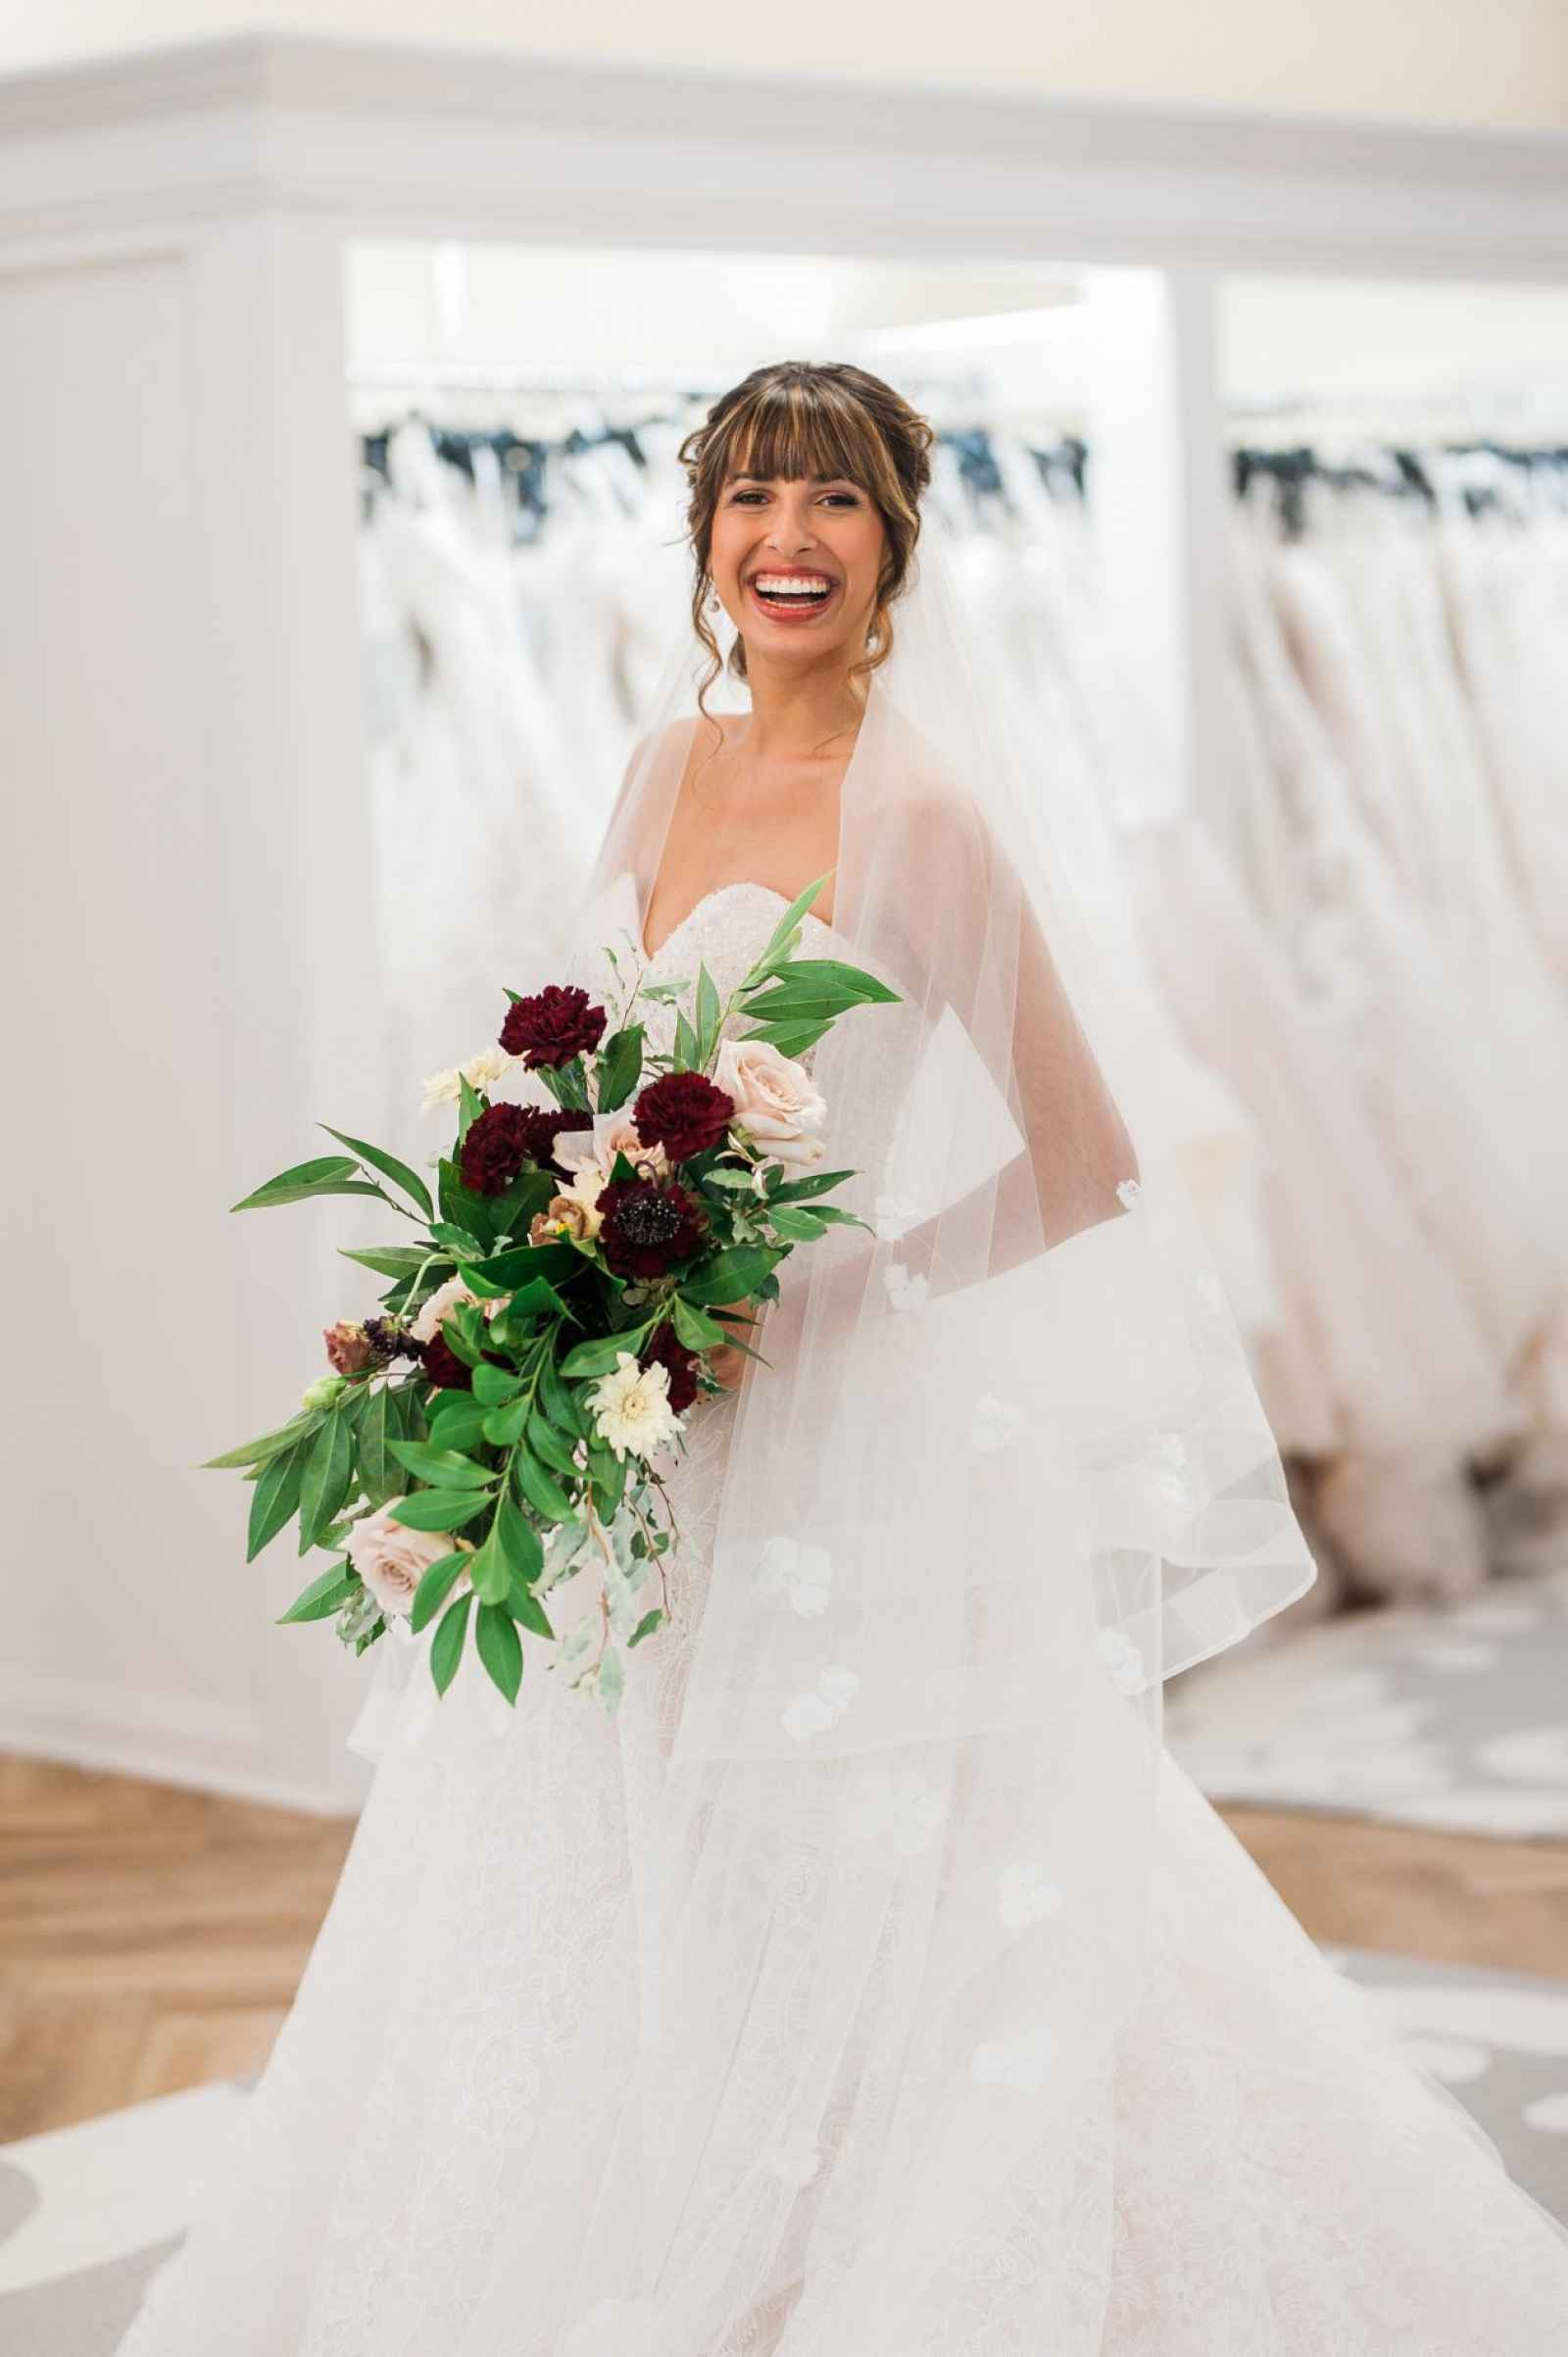 The Best Midwest Cities To Shop For Your Dream Gown Weddingday